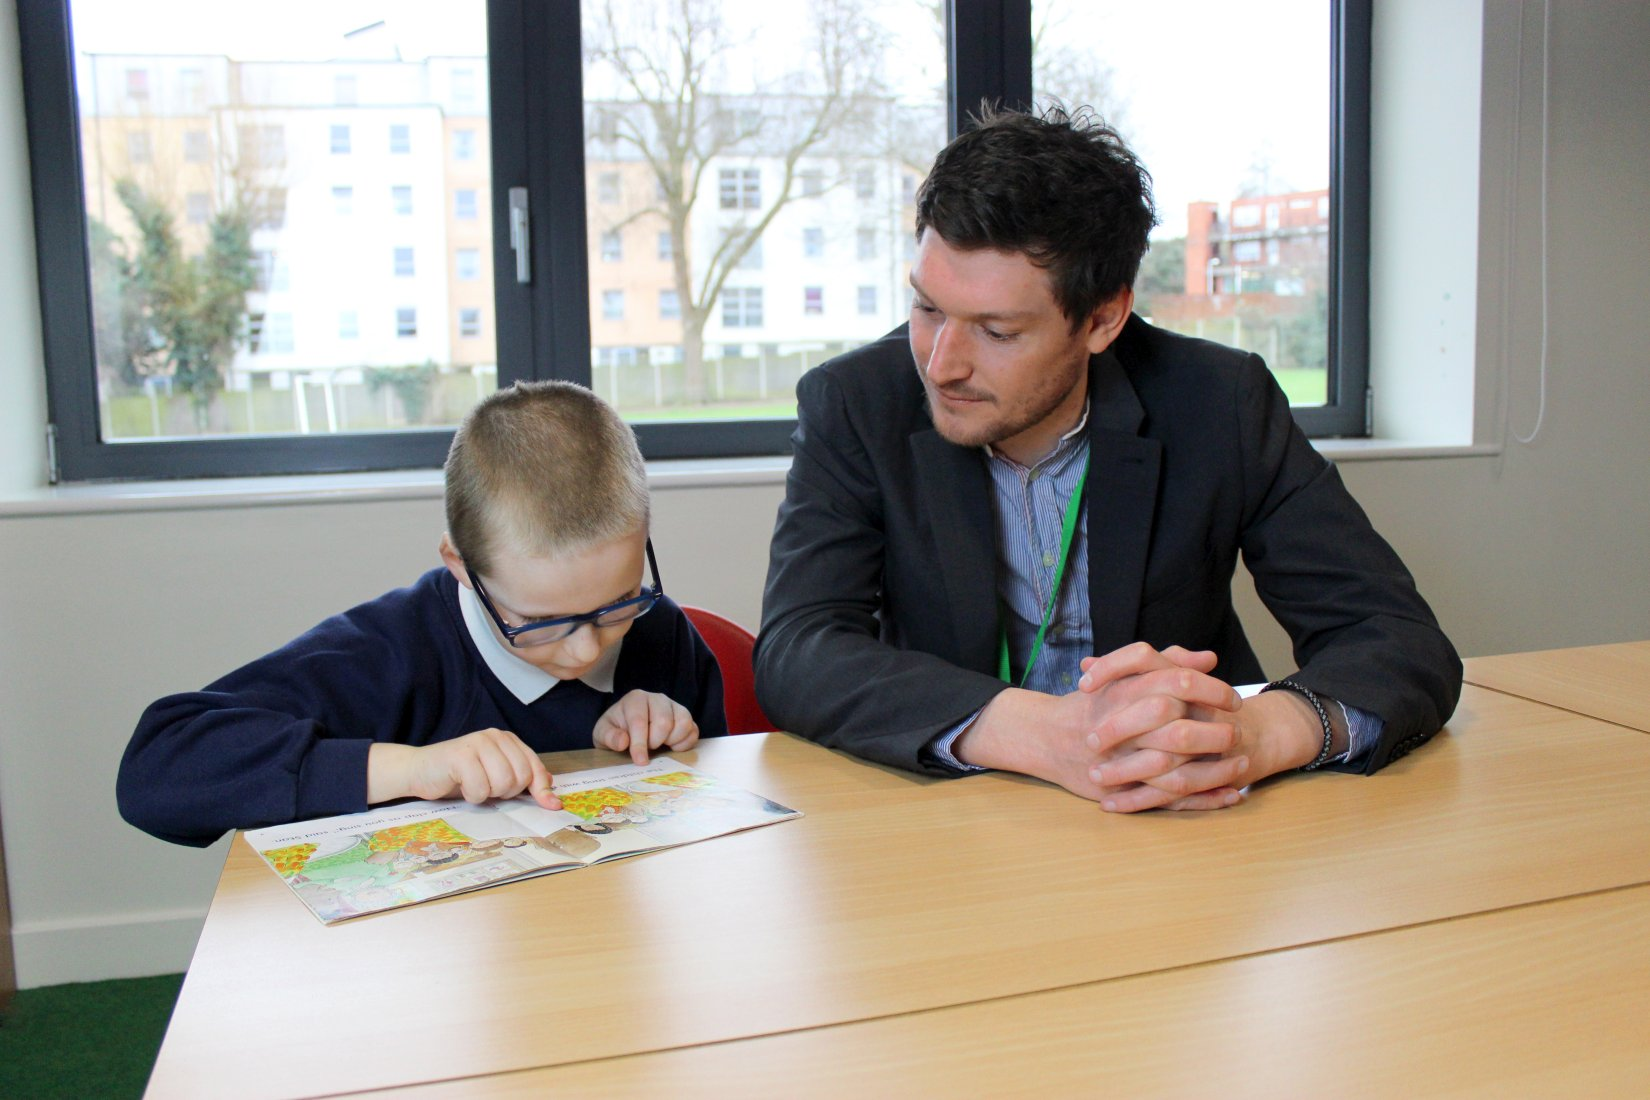 Mr Warmoth and pupil reading book